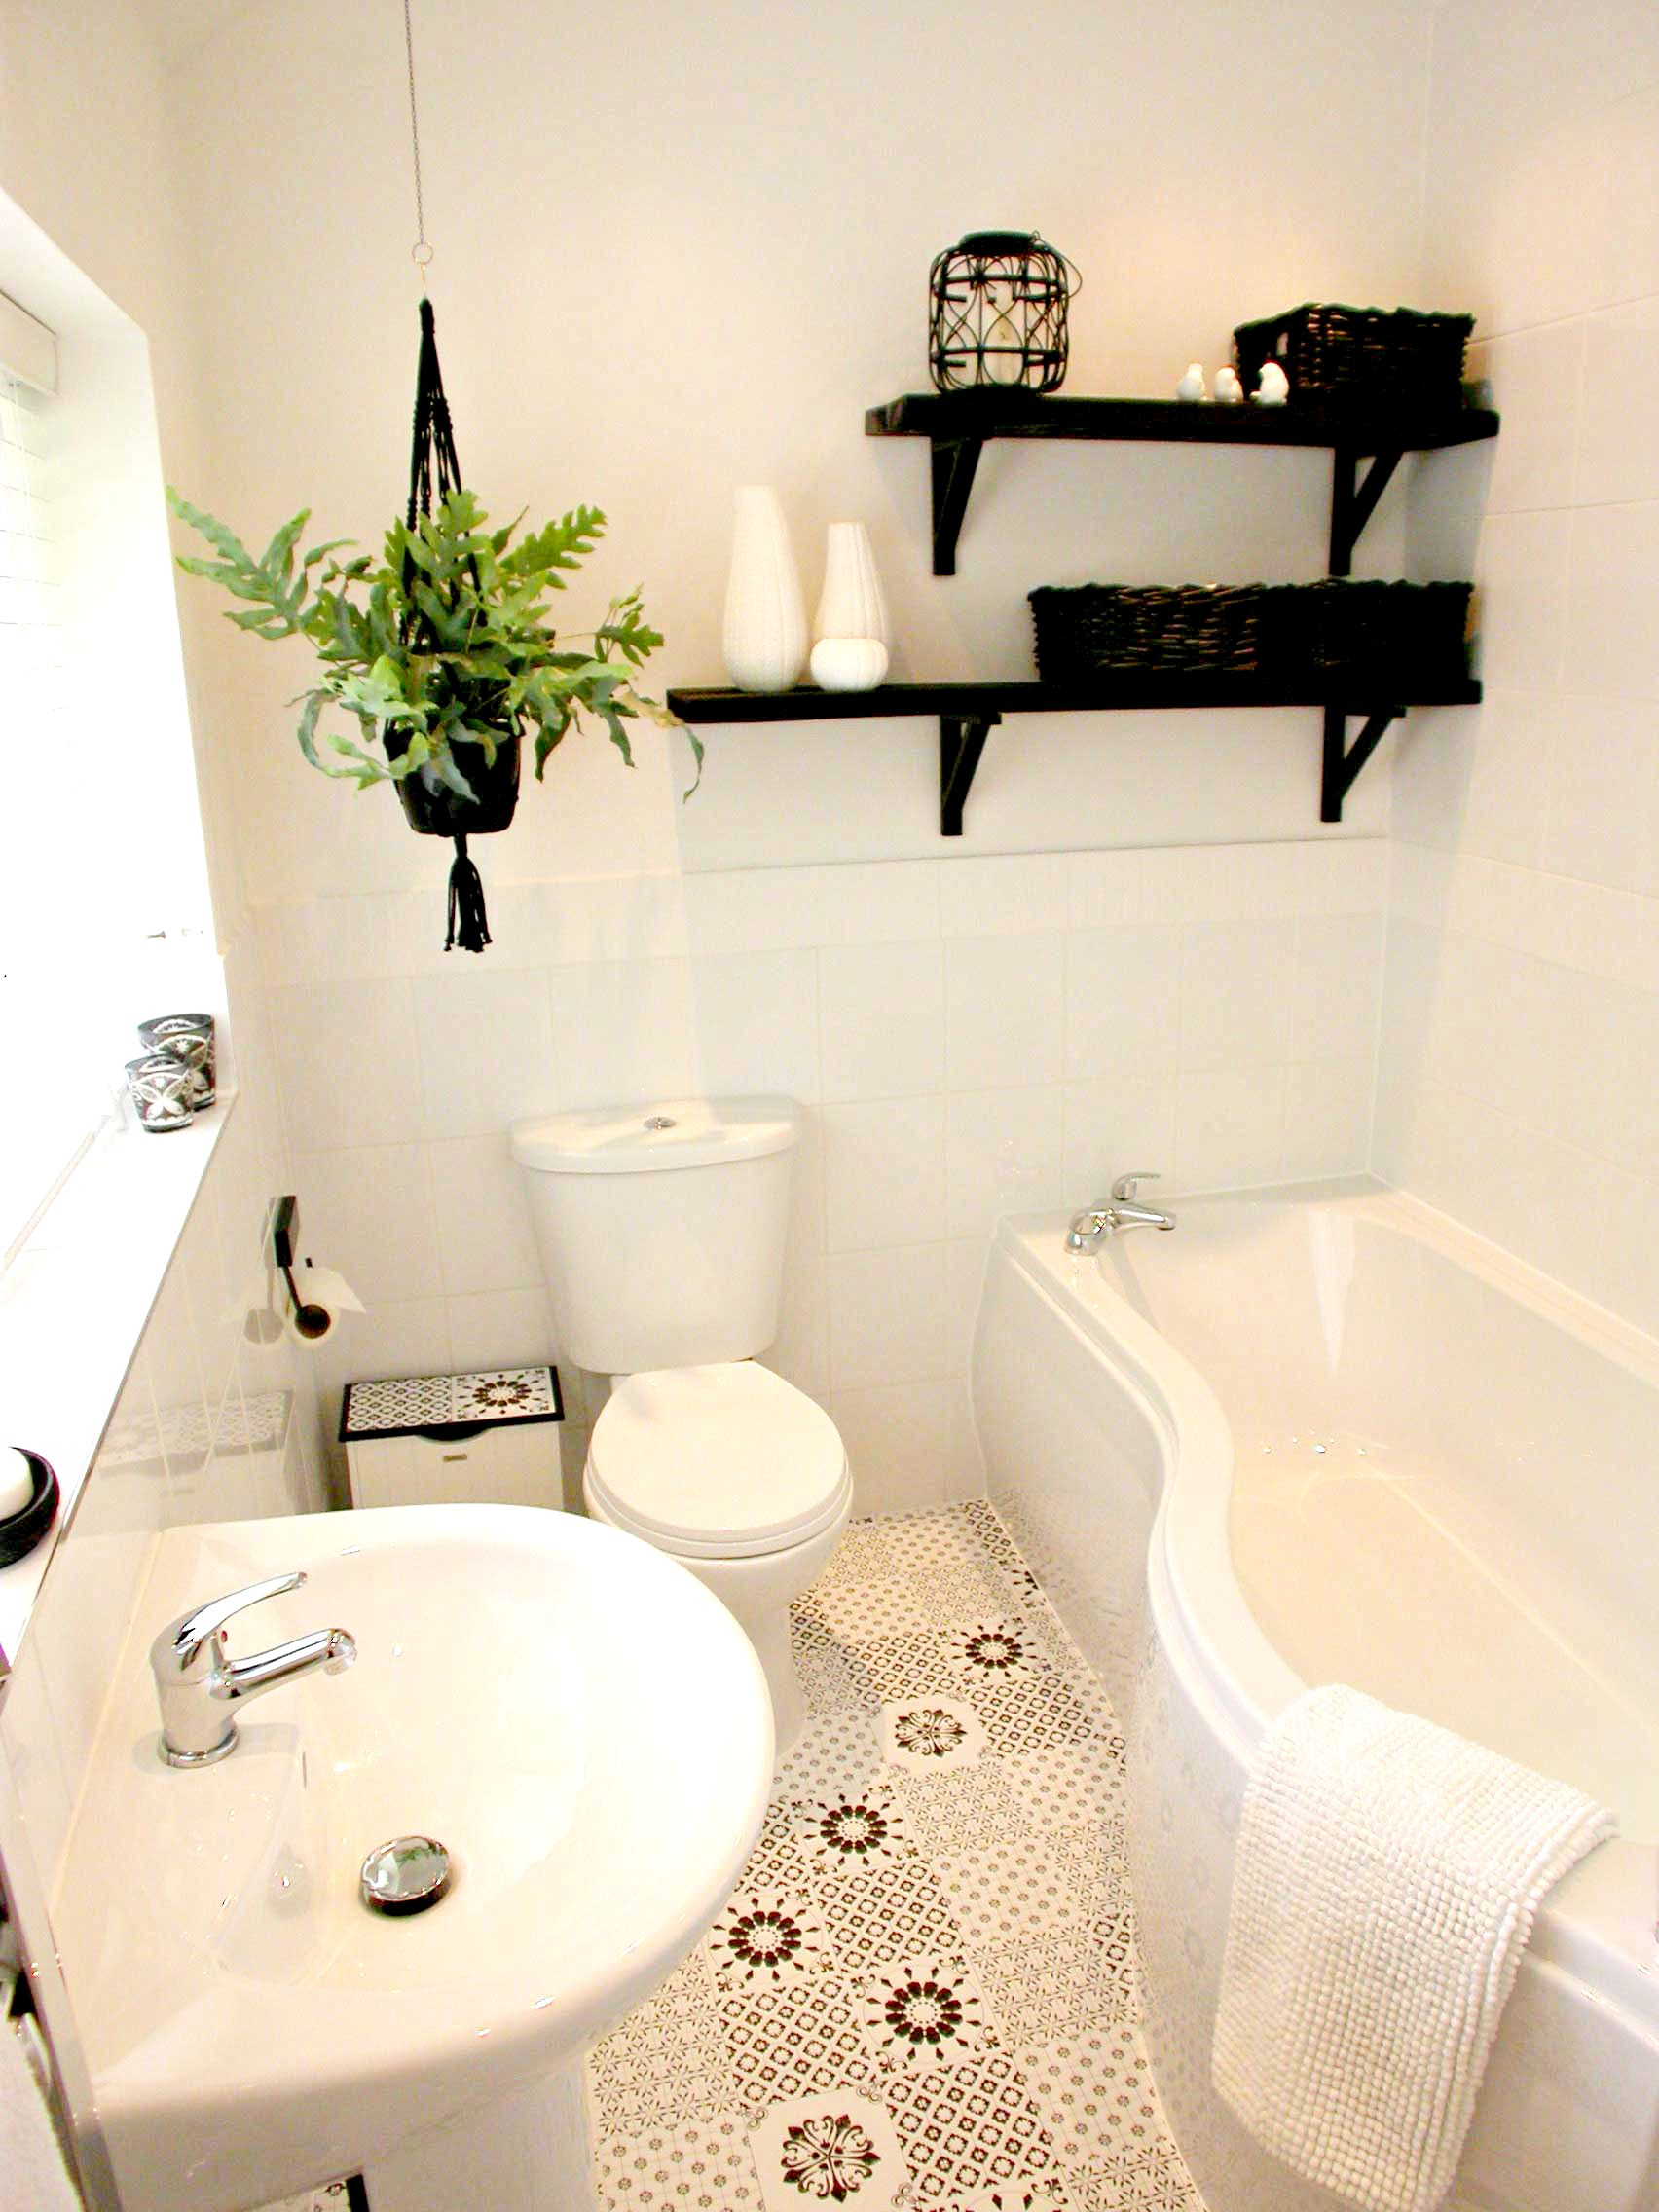 Bathroom Makeover On A Budget?